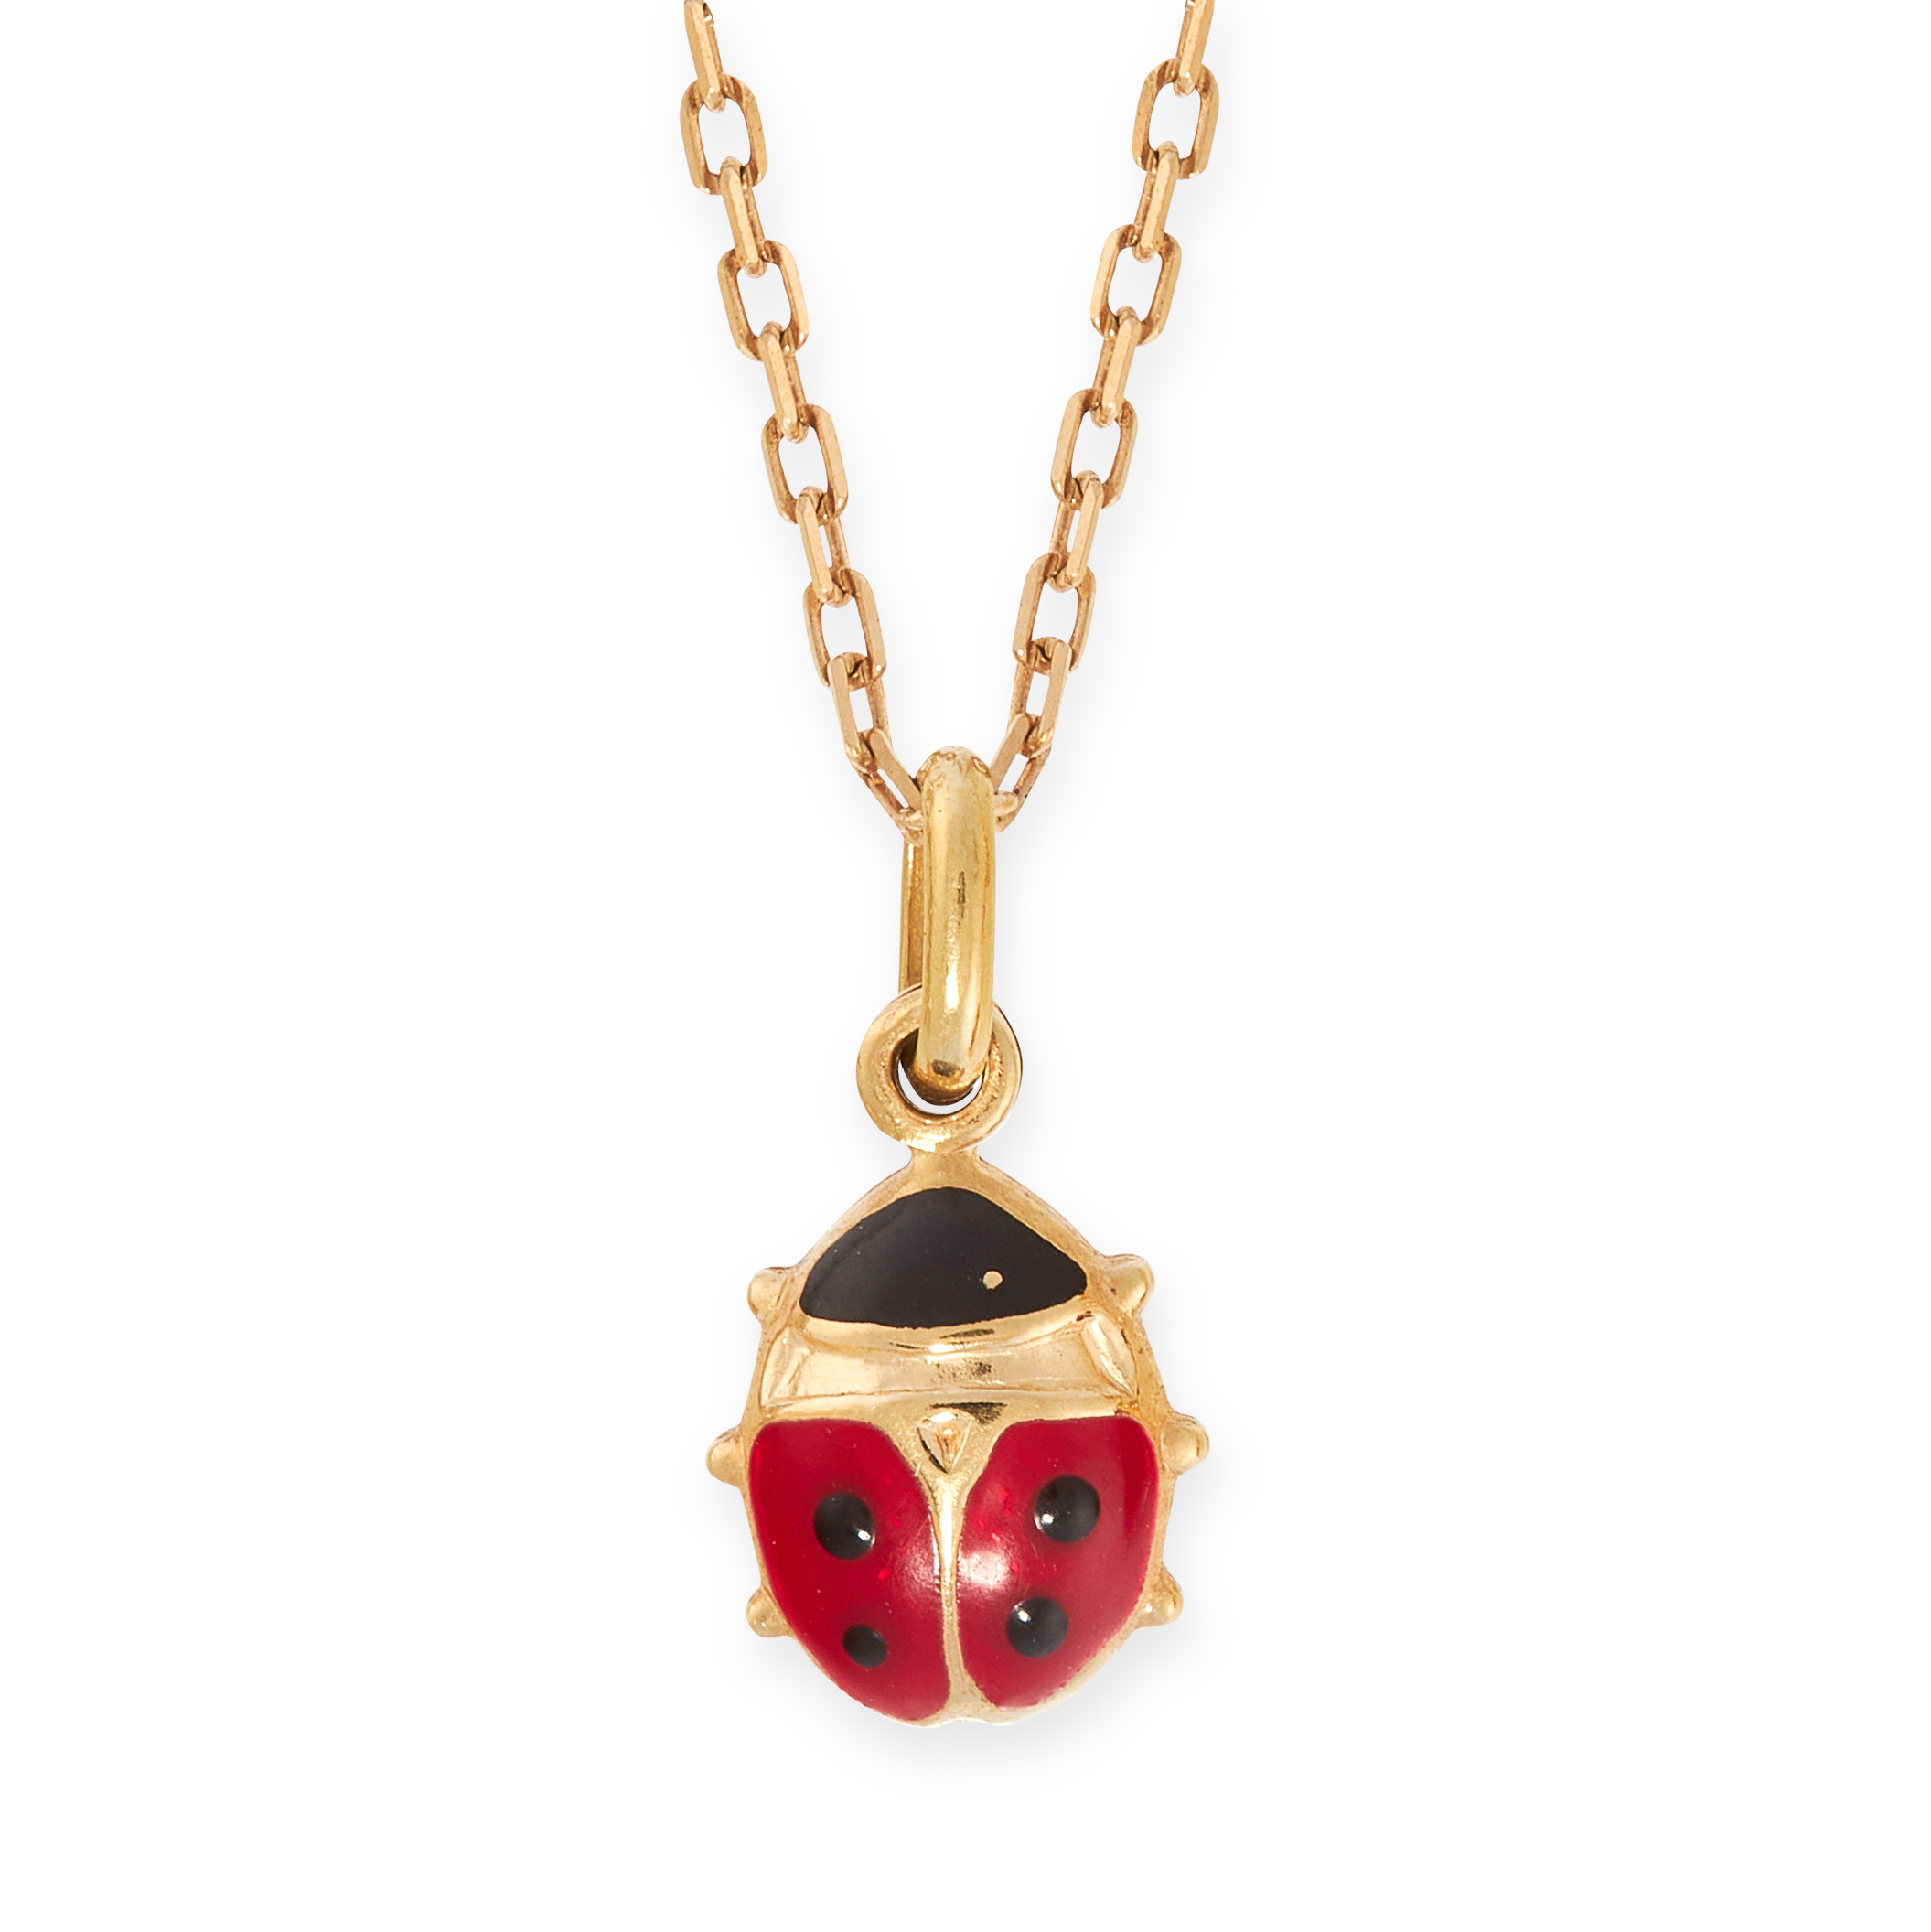 AN ENAMEL LADY BIRD PENDANT AND CHAIN in 18ct yellow gold, designed as a lady bird, with red and